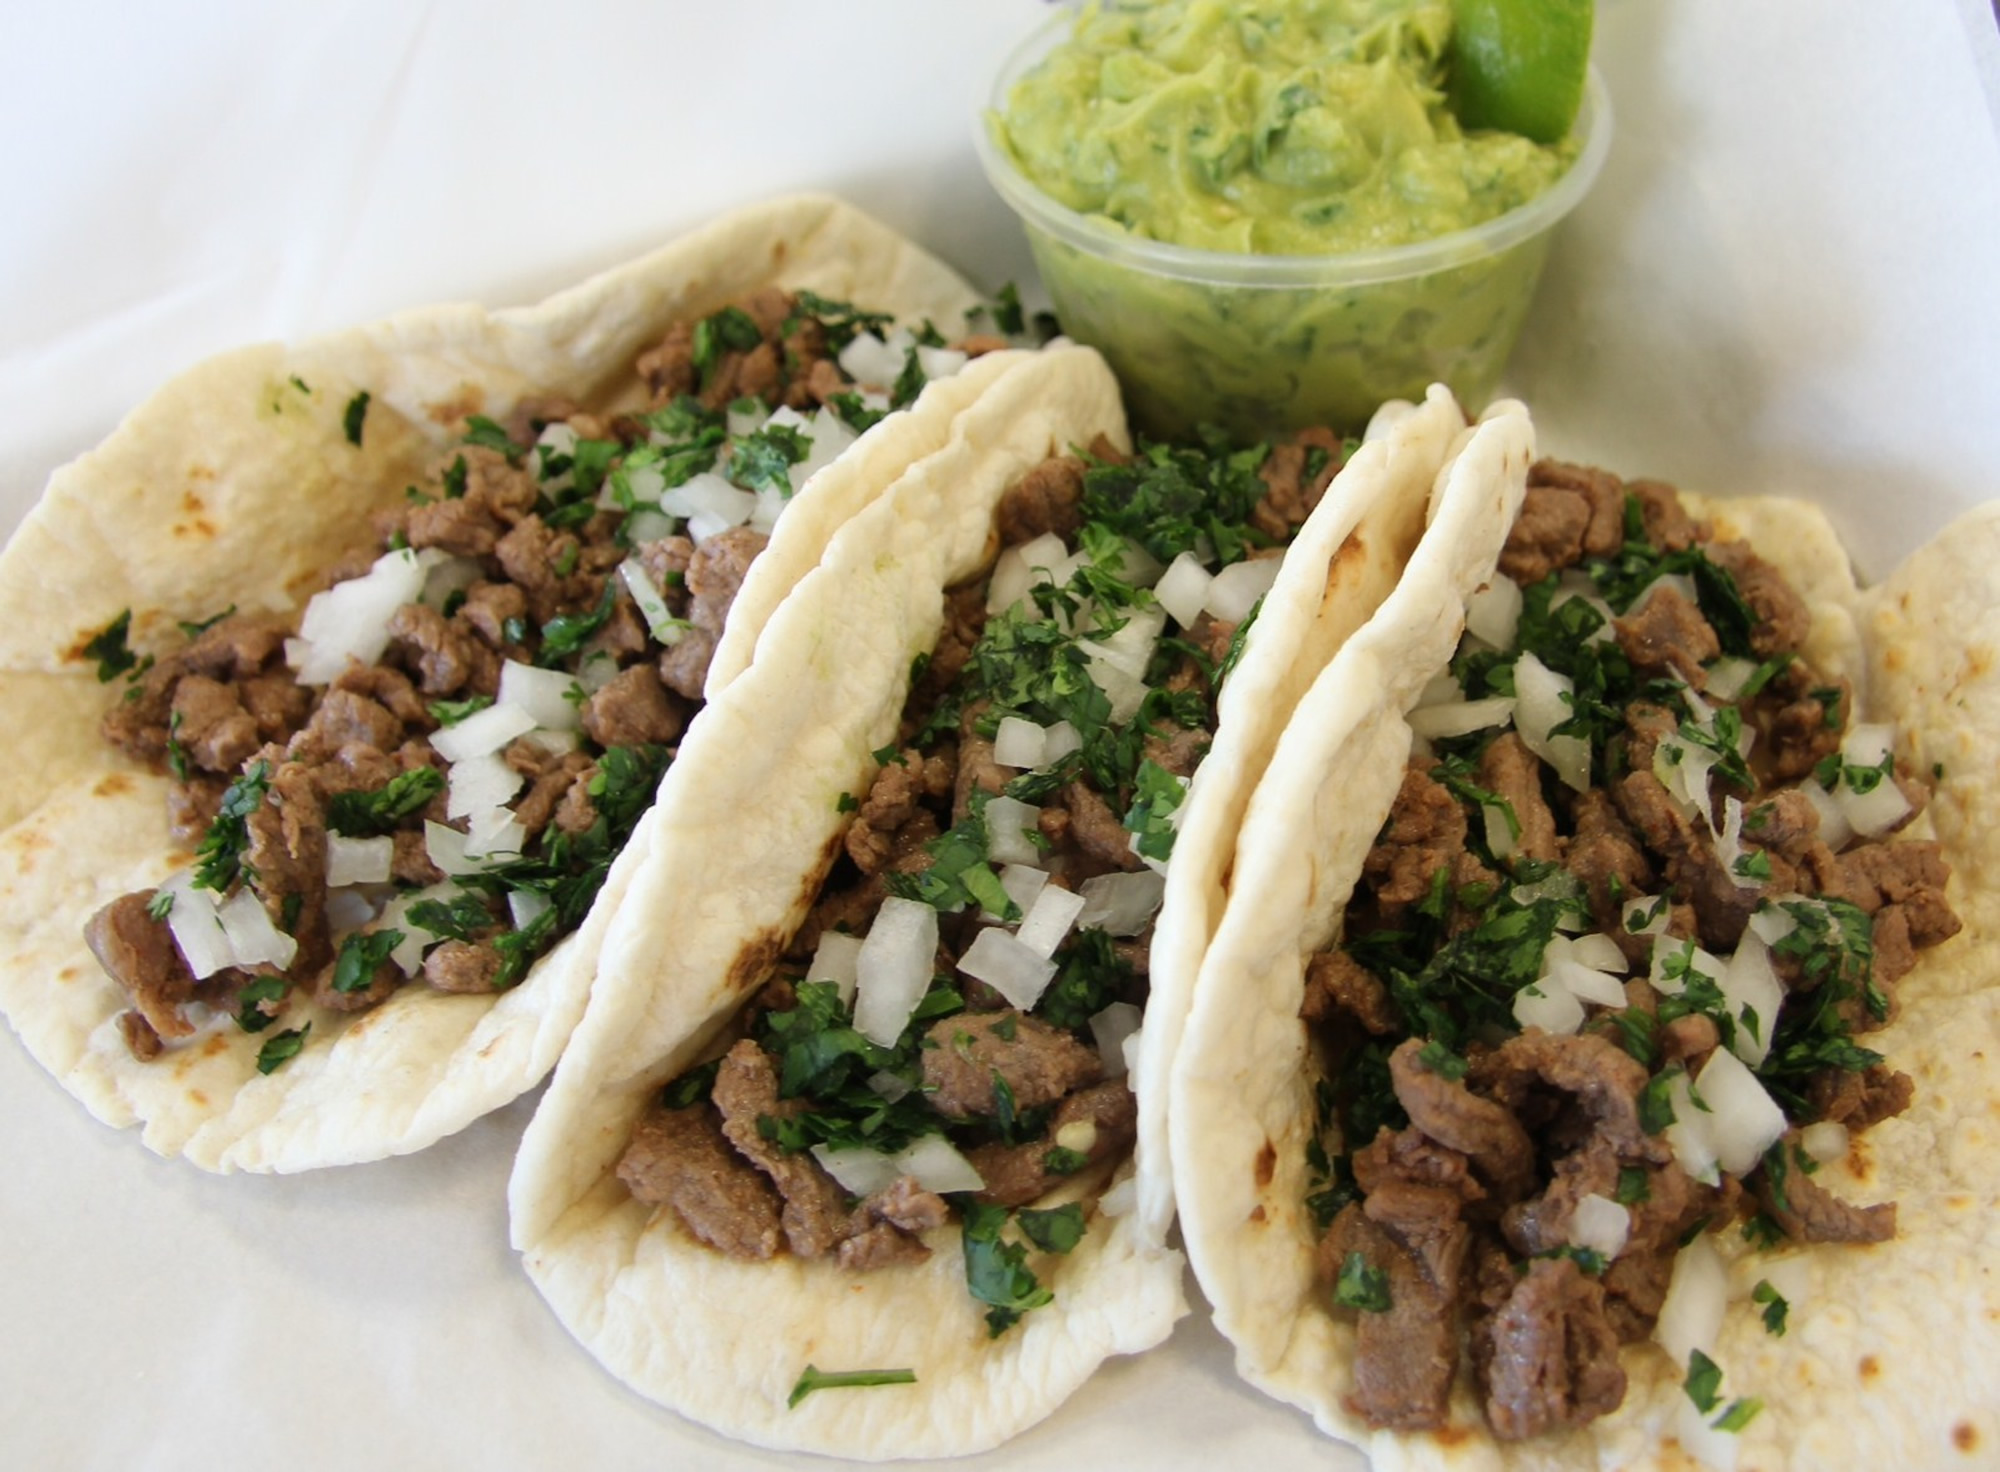 Carne_Asada_tacos_at_Hello_Taco_-_photo_courteous_of_Hello_Taco2.jpg